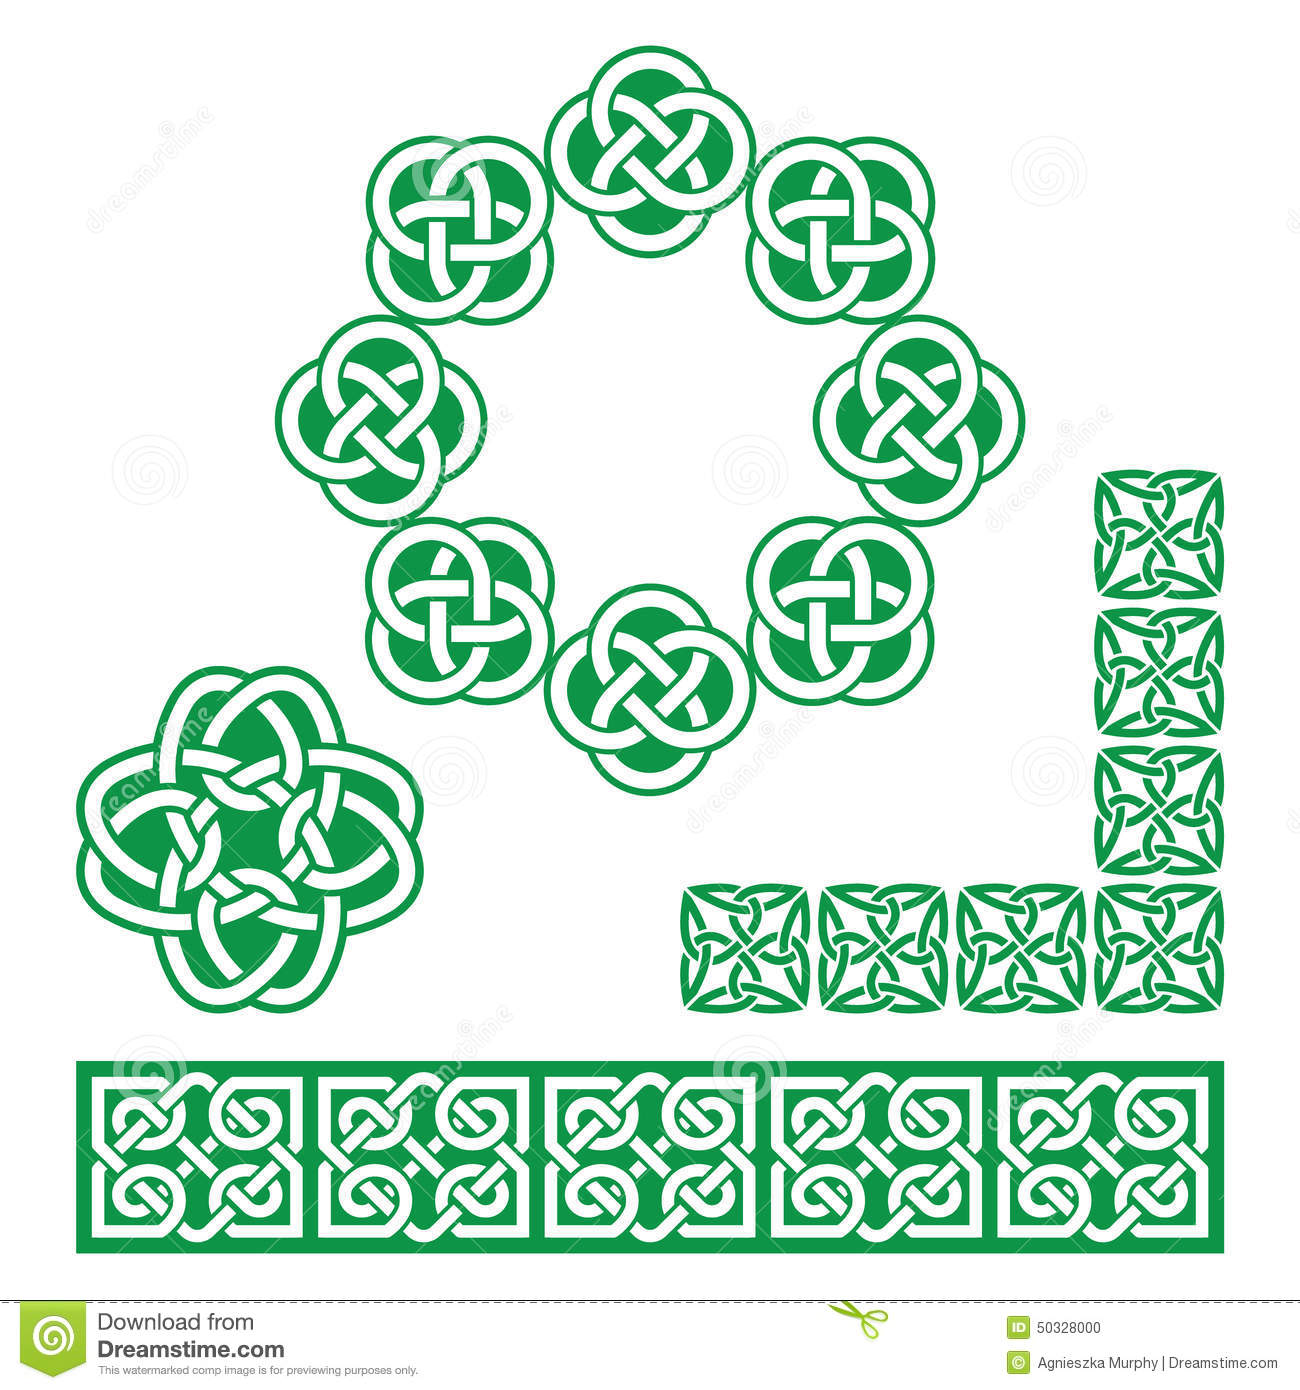 Img Large Watermarked also Famous Painting From Cave additionally Green Vine Spiral together with Spiralfishoverpaint Cv as well Ketupat Candle Eid Mubarak. on s spiral border green